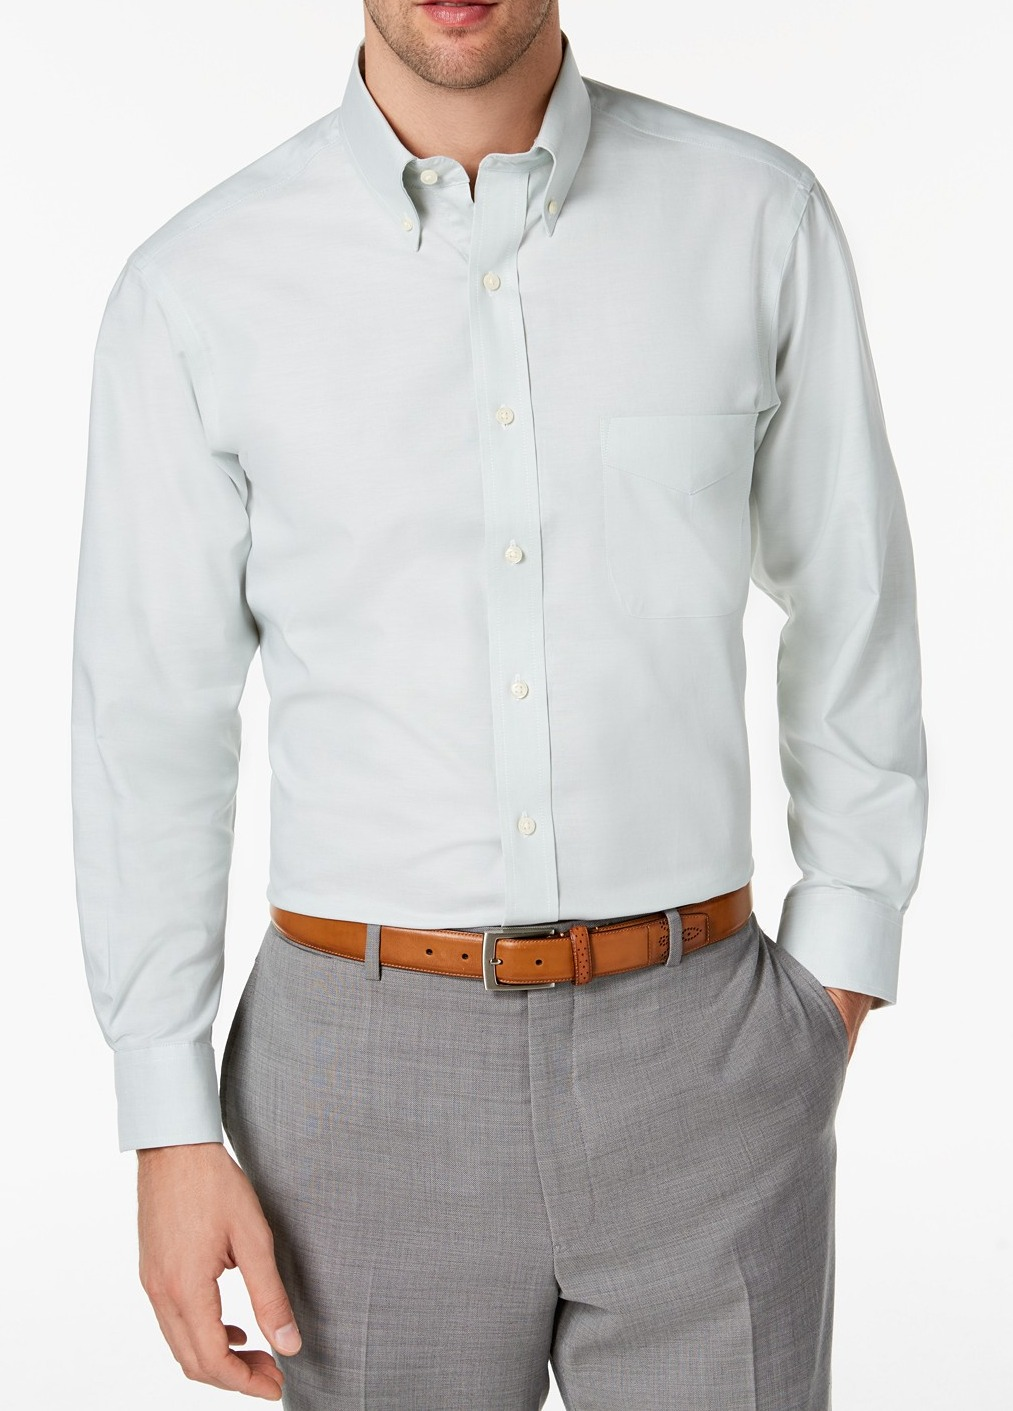 Details about Club Room Mens Sage Green Size 16 12 Oxford Solid Slim Fit Dress Shirt $55 114